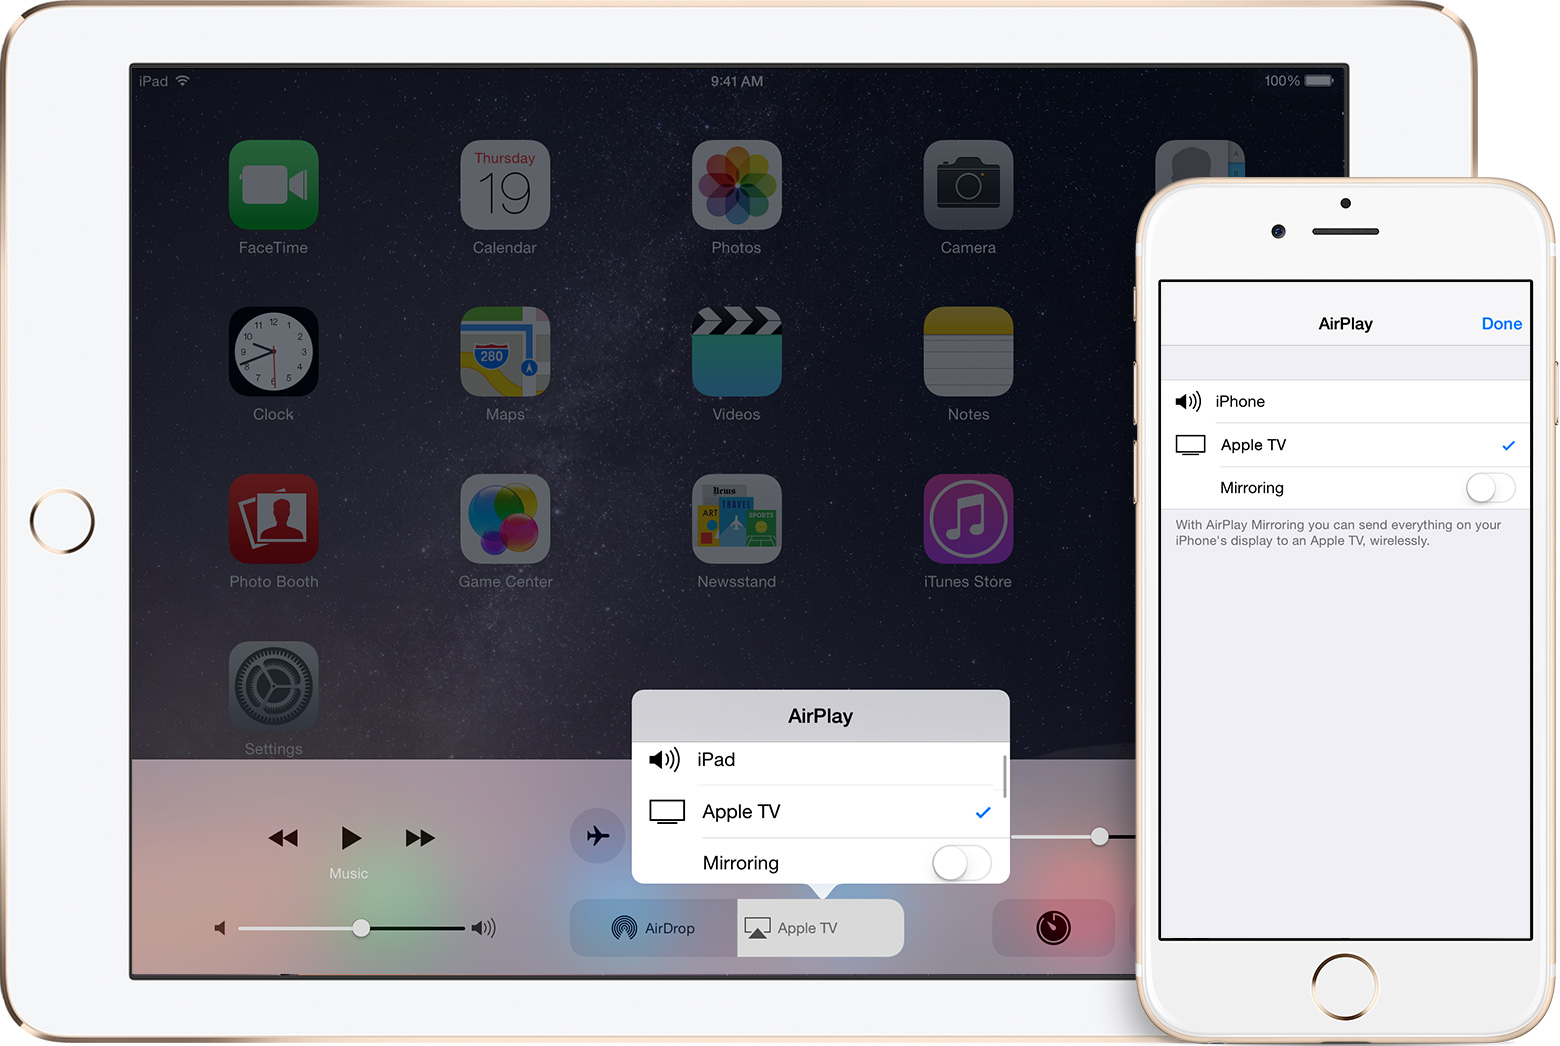 WHAT CAN YOU AIRPLAY TO APPLE TV